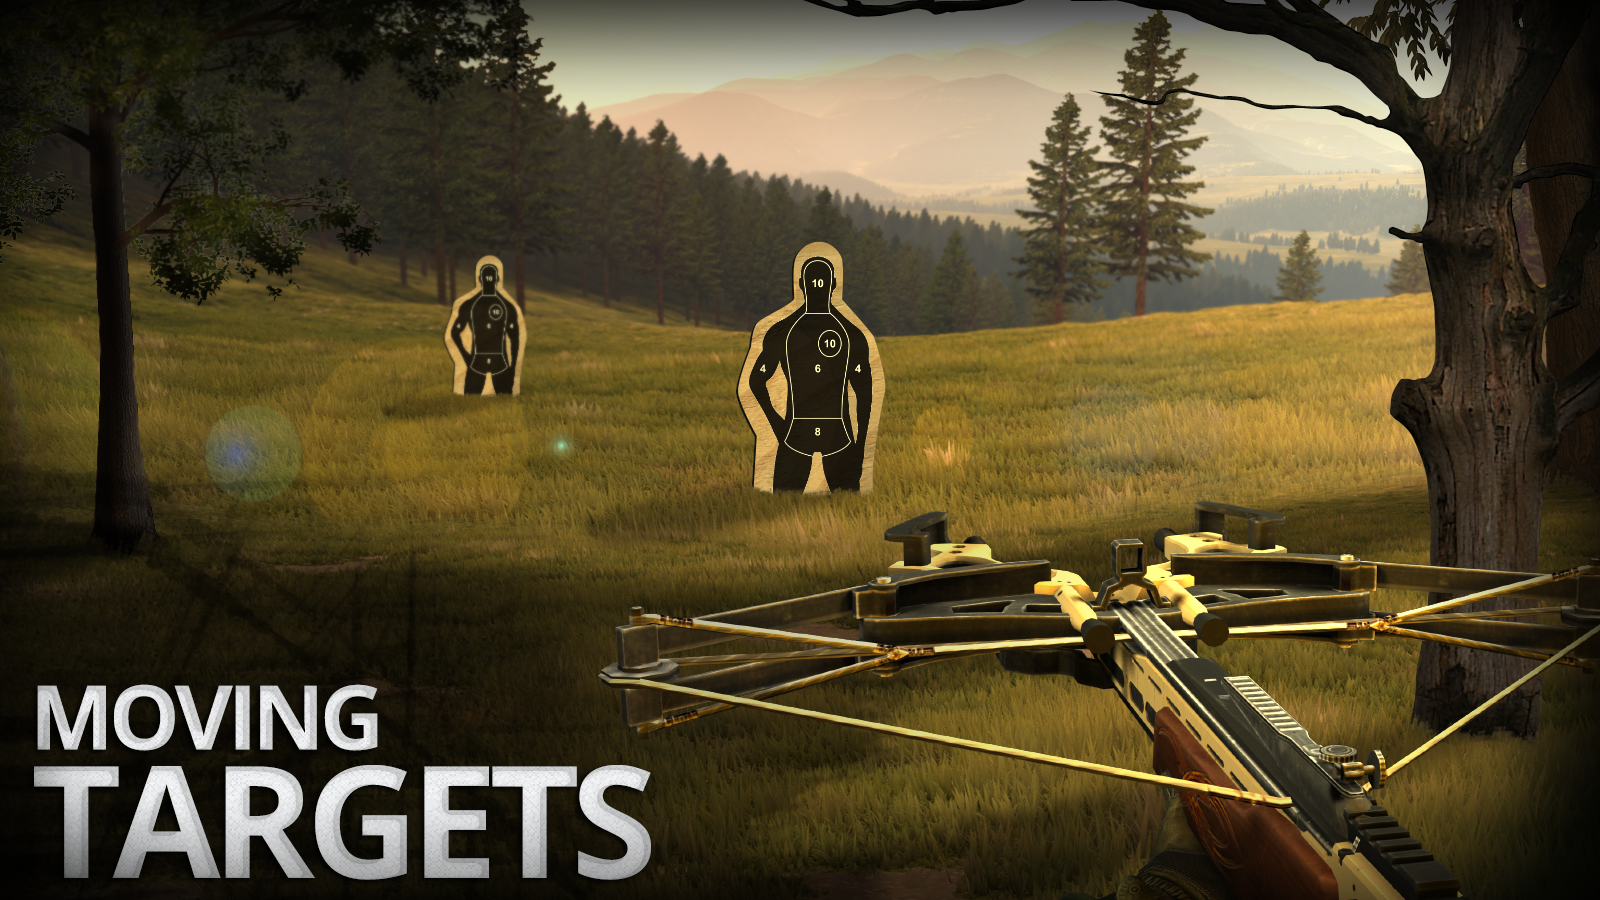 Crossbow Shooting Range Game 1 10 APK Download - Android